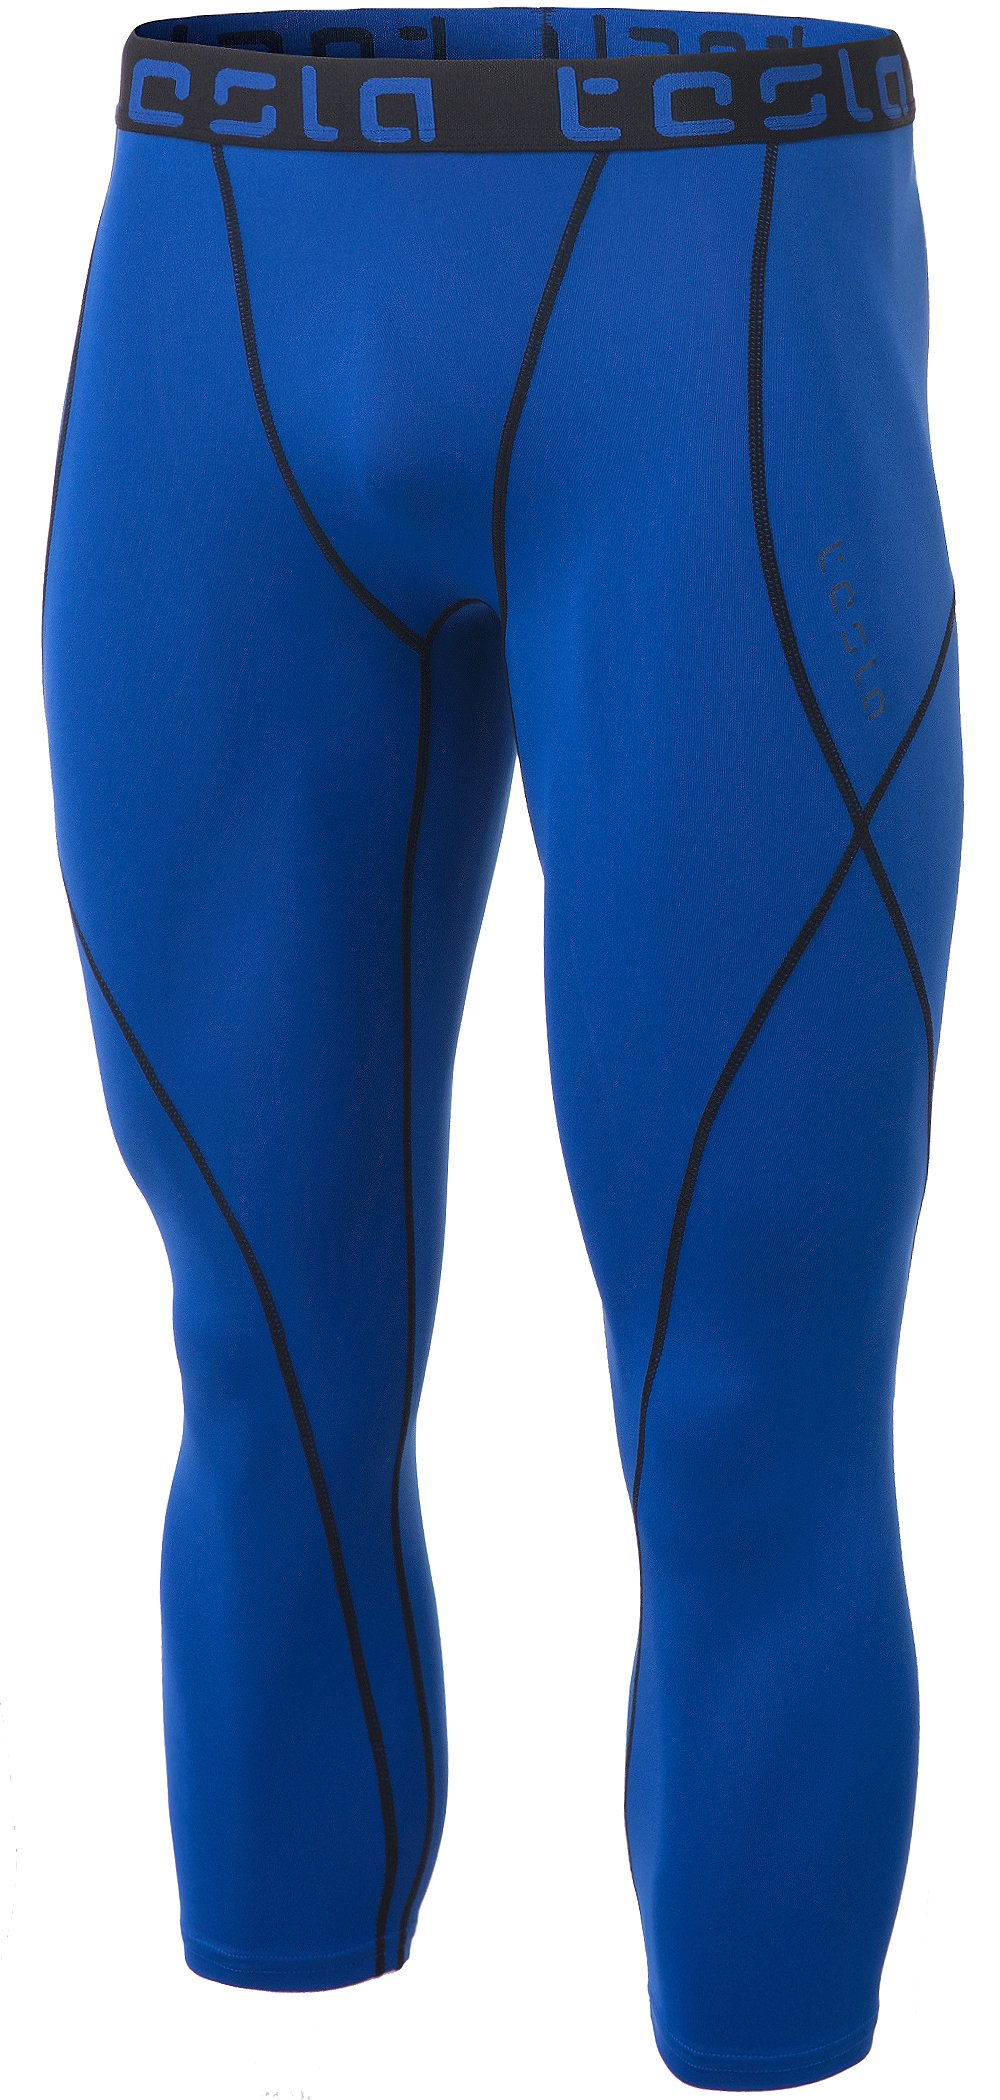 TSLA Men's Compression 3/4 Capri Pants Baselayer Cool Dry Sports Running Yoga Tights, Atheltic(muc18) - Blue, Medium. by TSLA